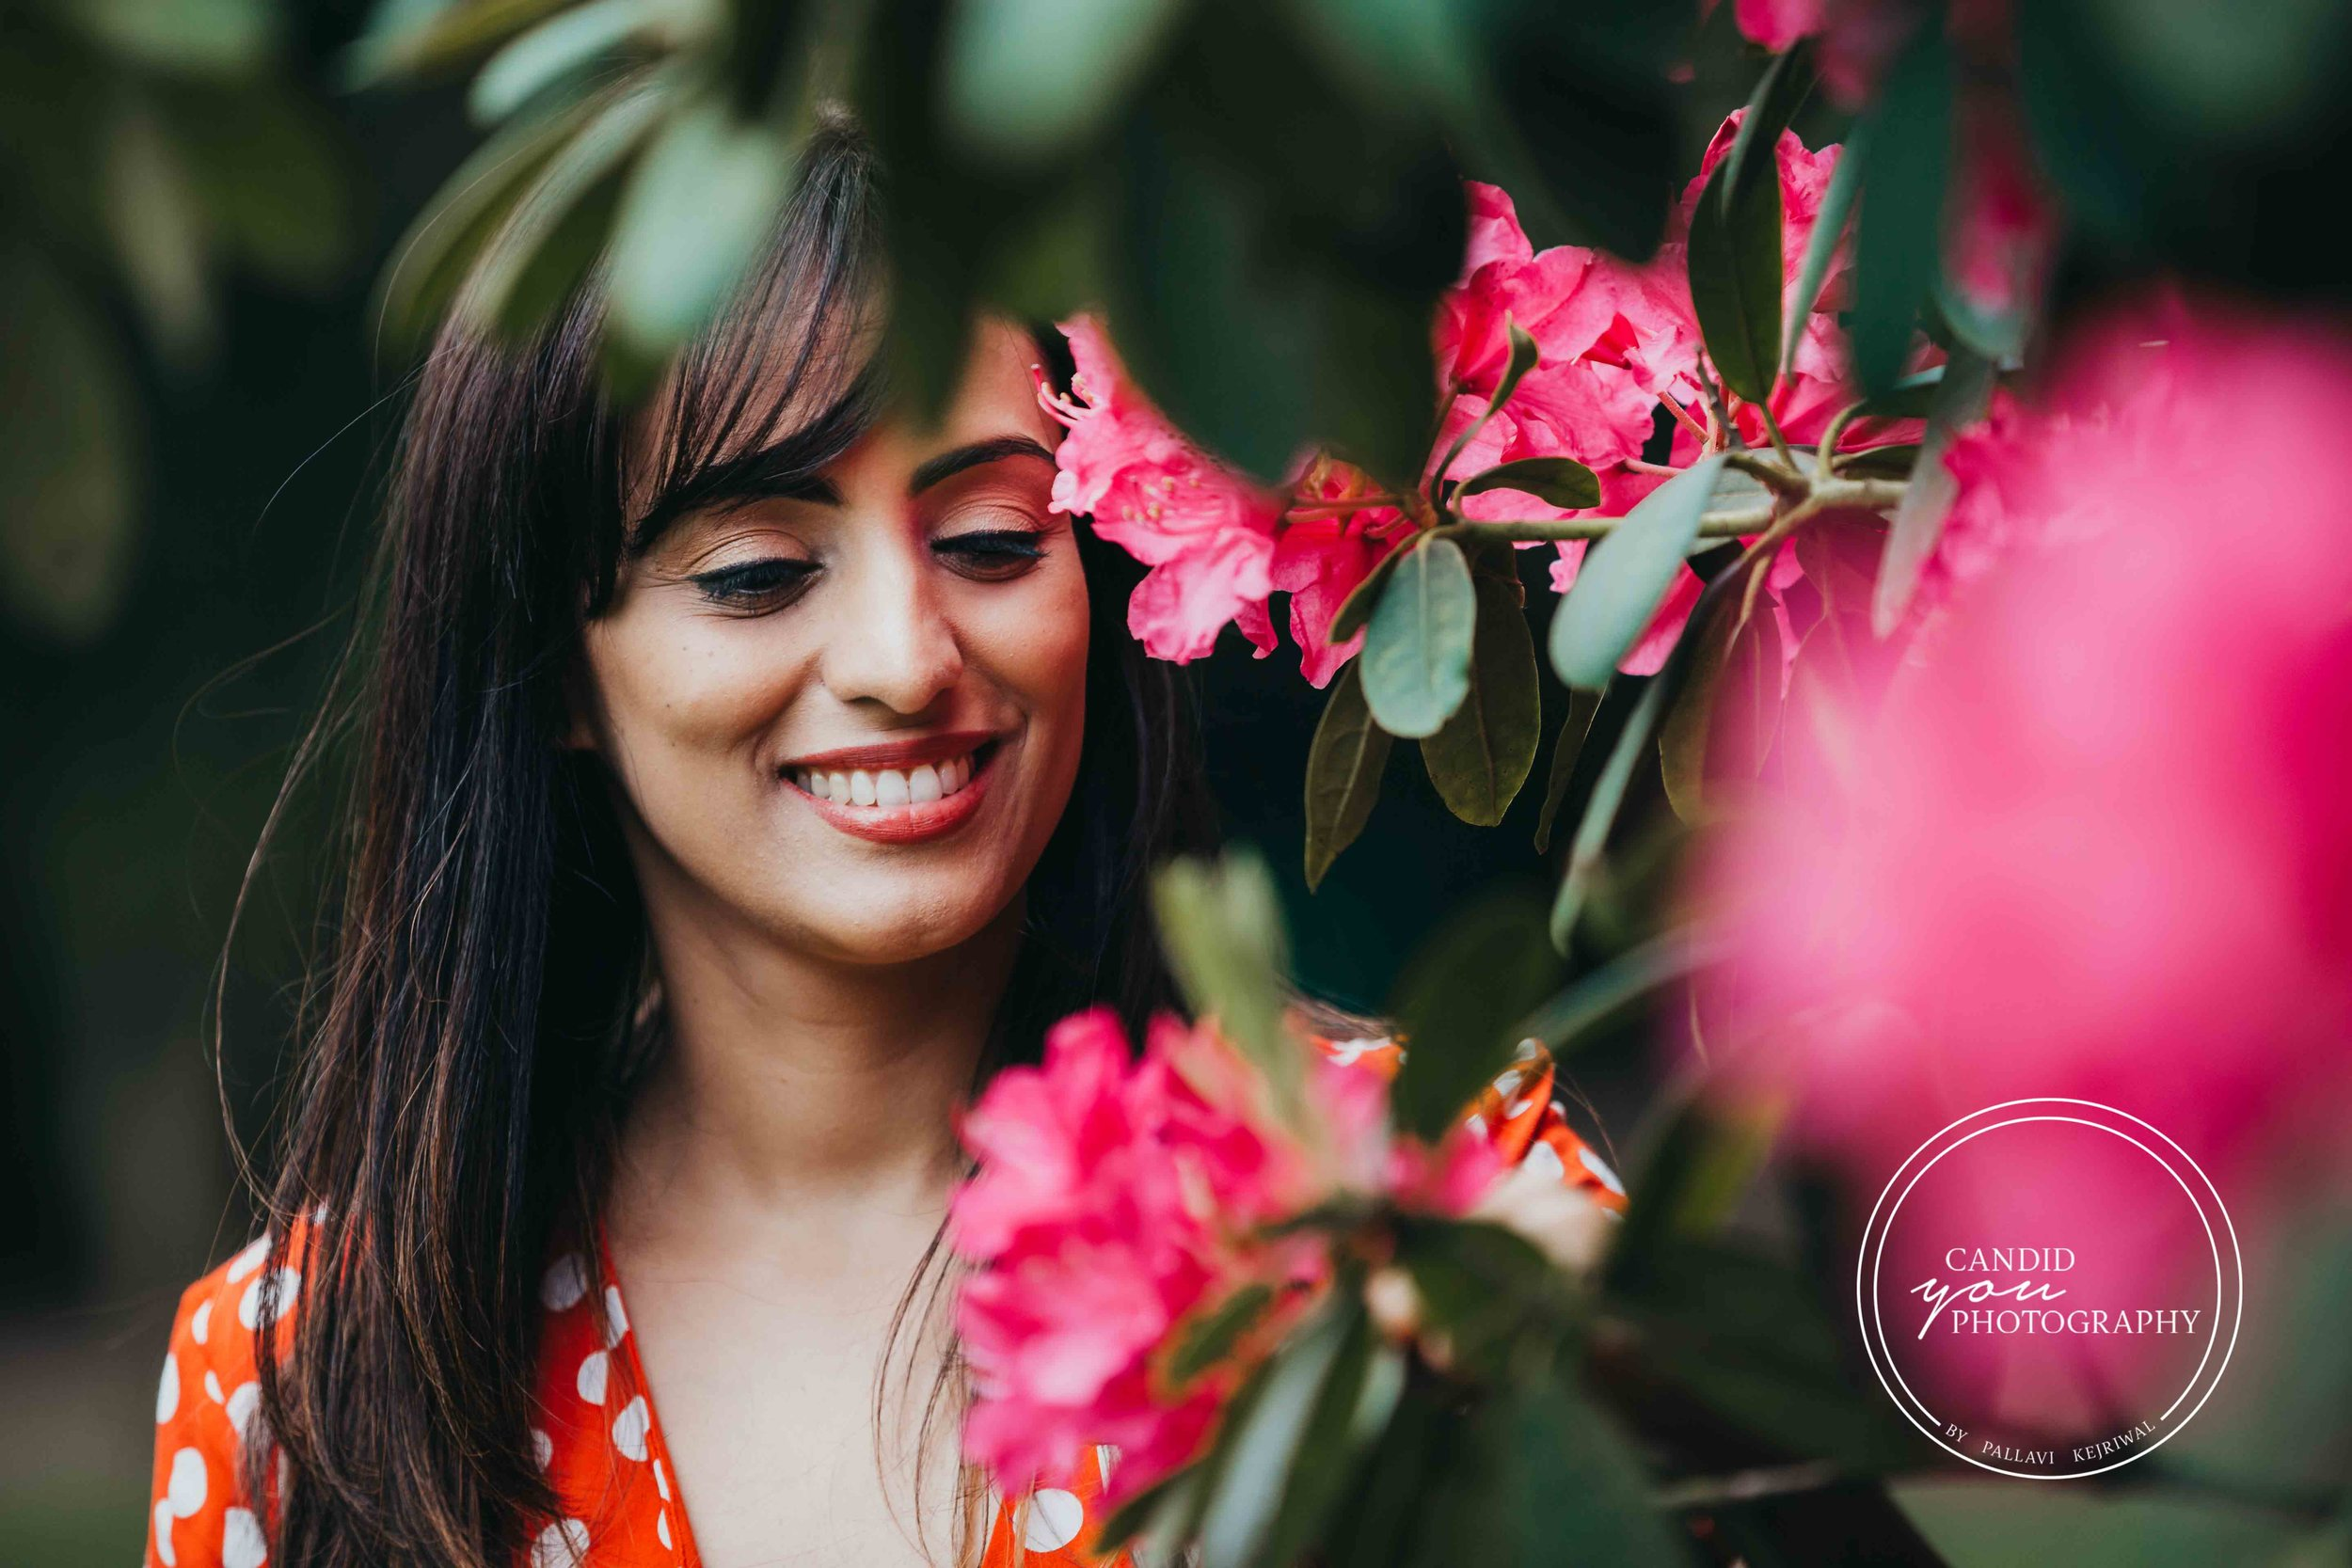 beautiful lady smiling at pink flowers